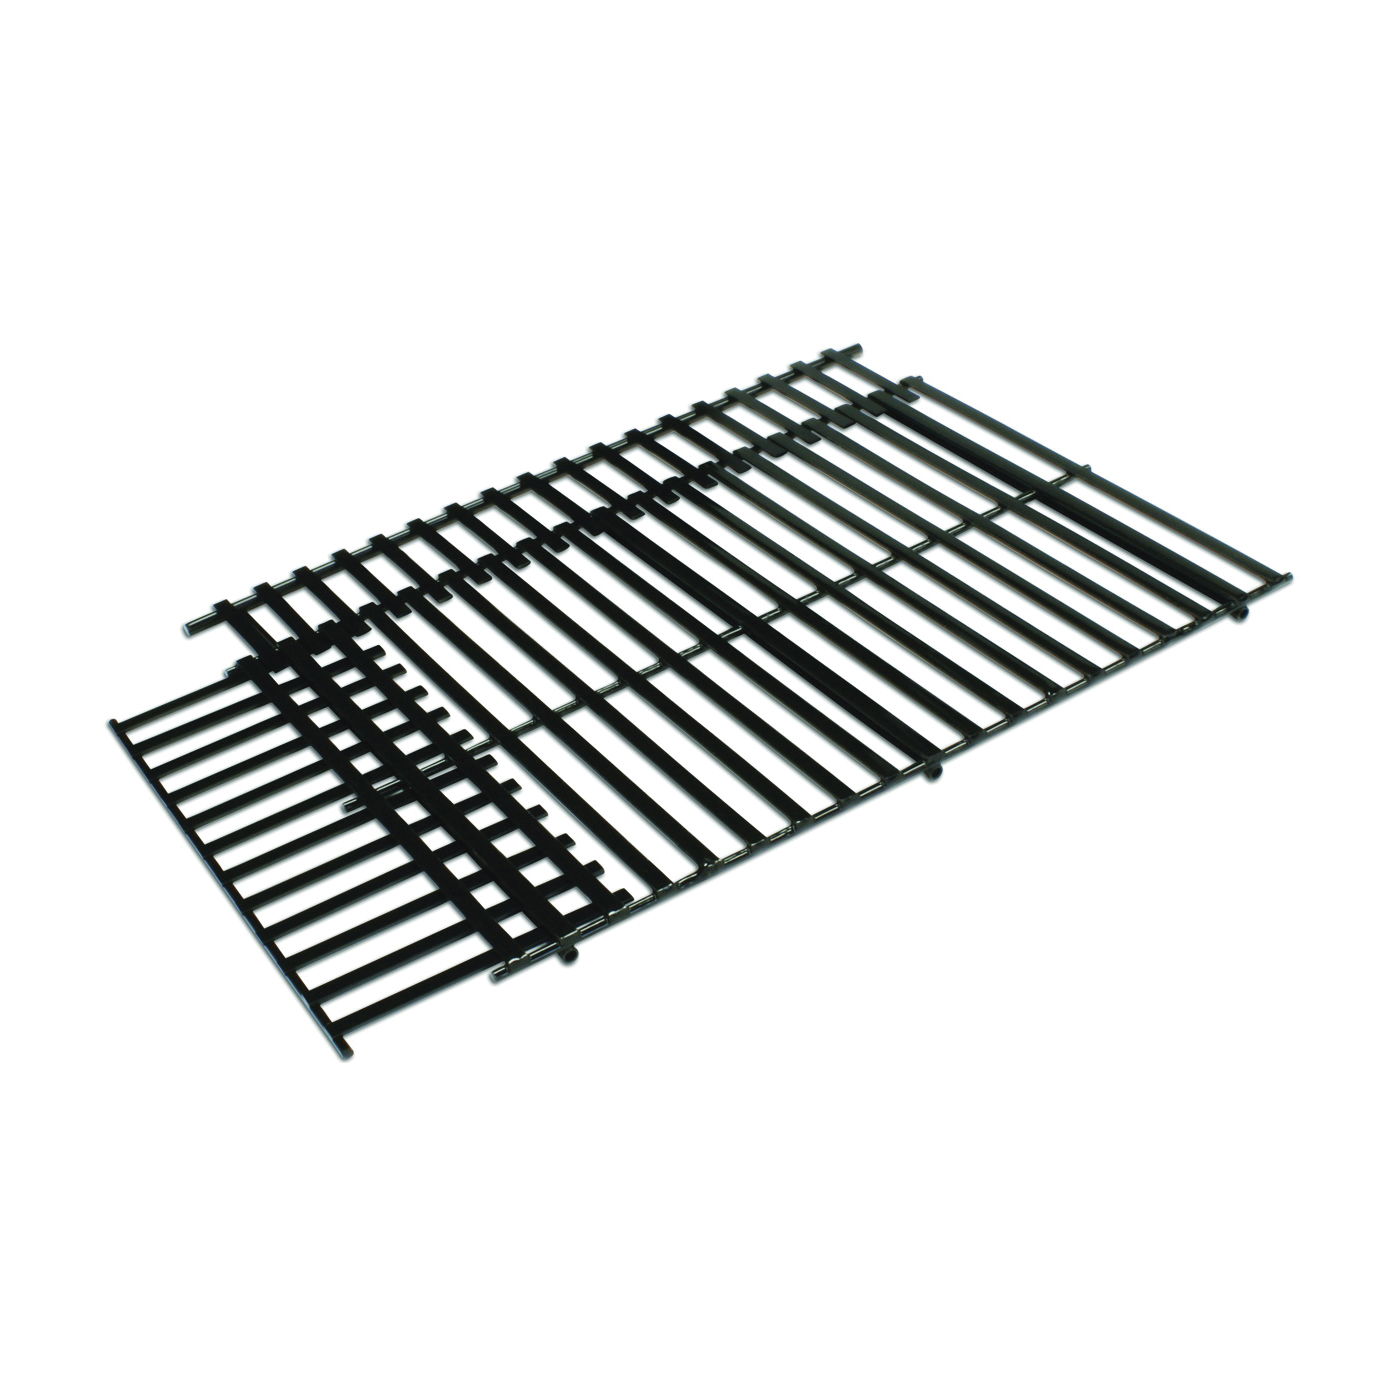 Picture of GrillPro 50225 Cooking Grid, 21 in L, 14-1/2 in W, Steel, Porcelain Enamel-Coated